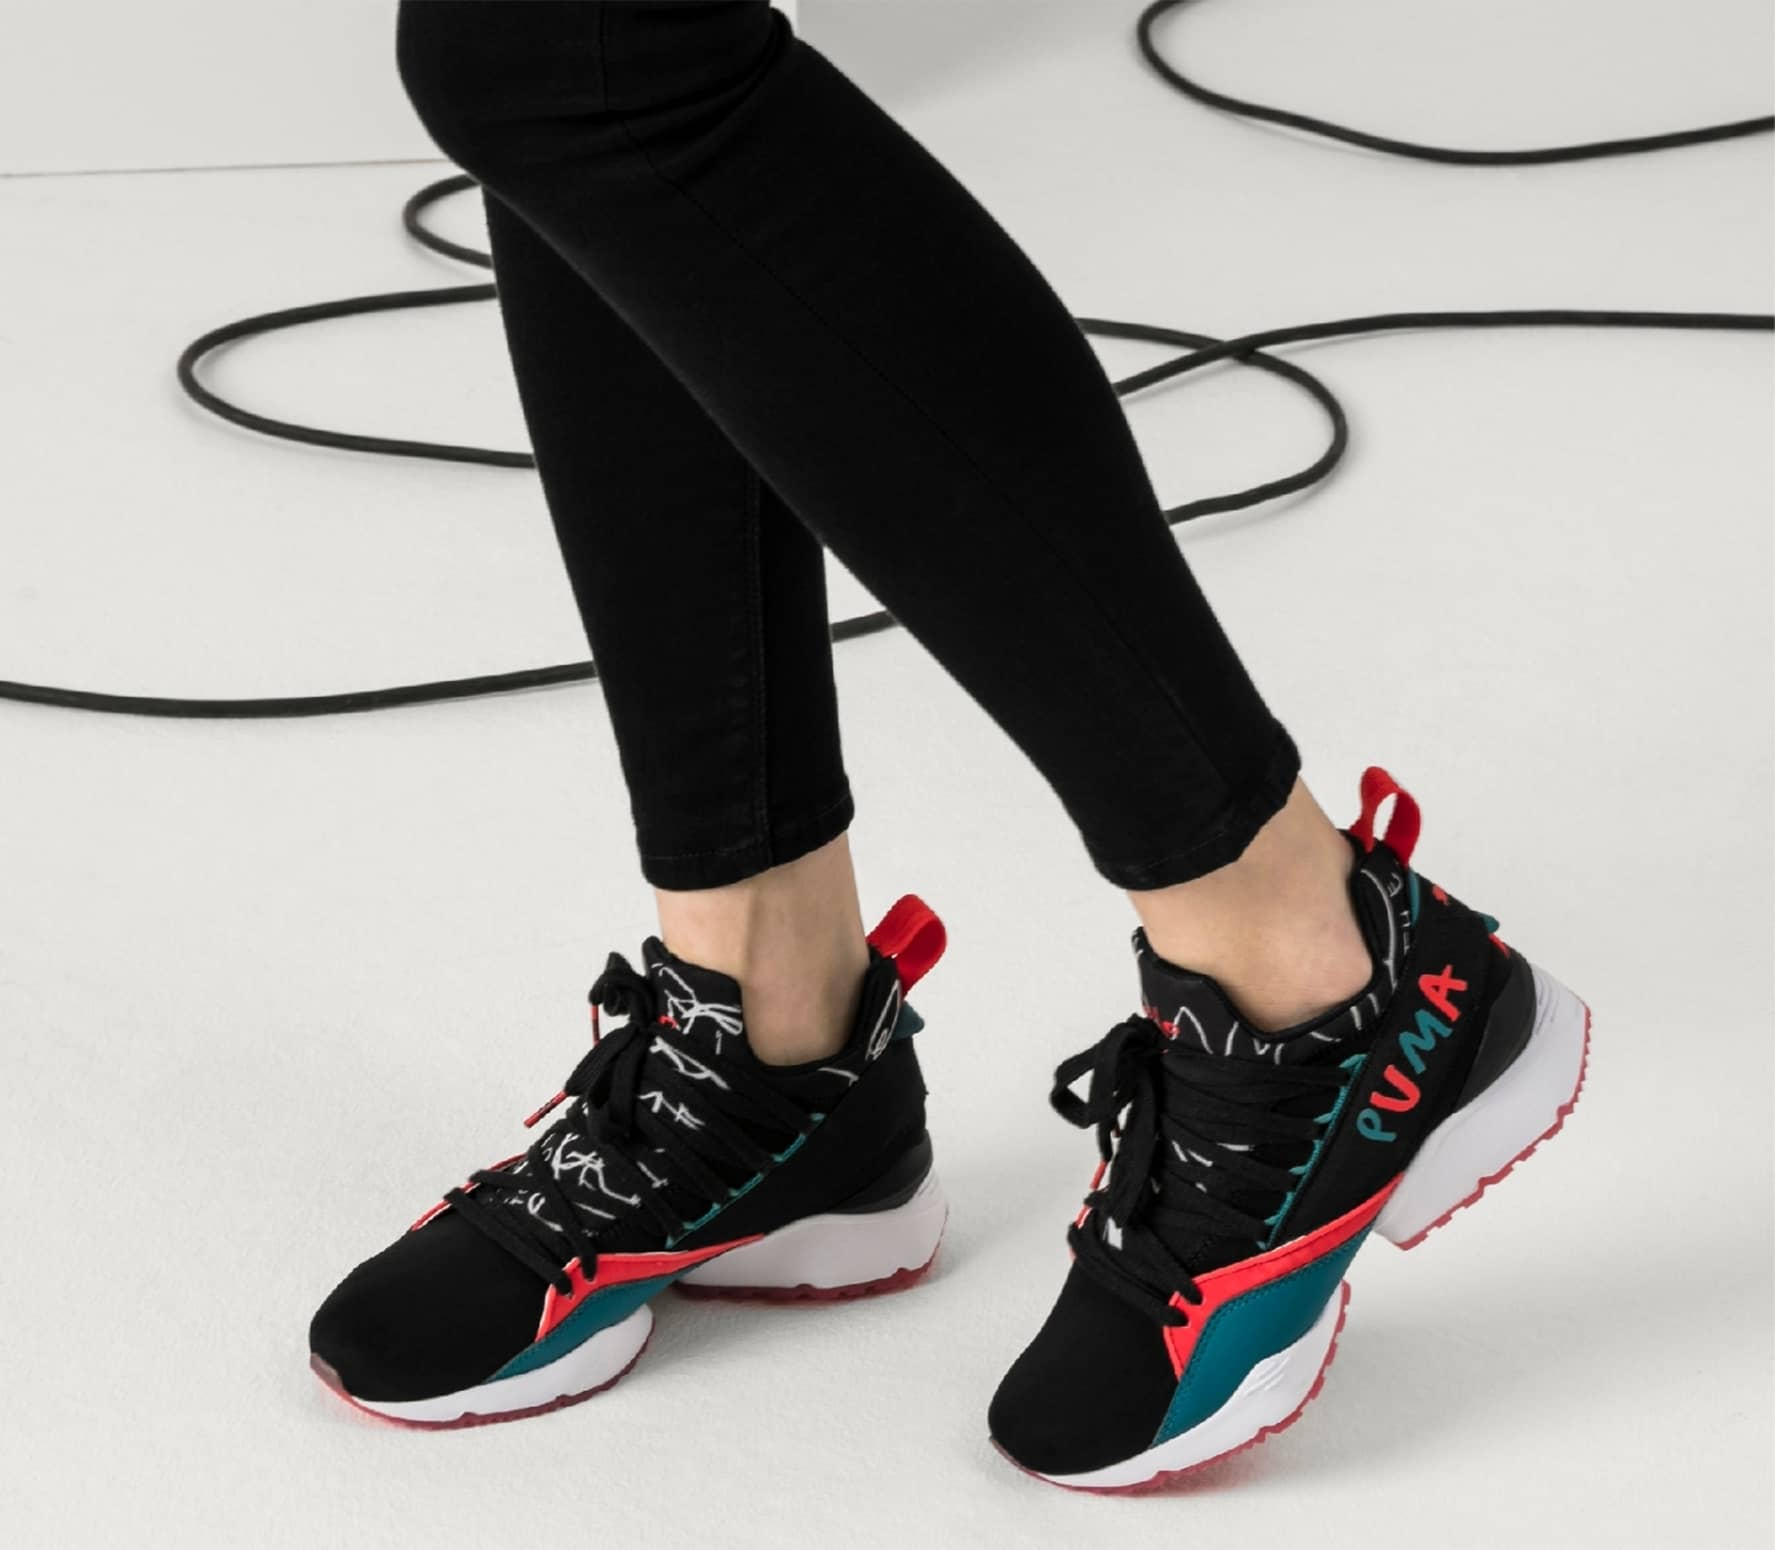 Puma X Shantell Martin Muse Maia women s trainers (black red) online ... 4a7a401fb1